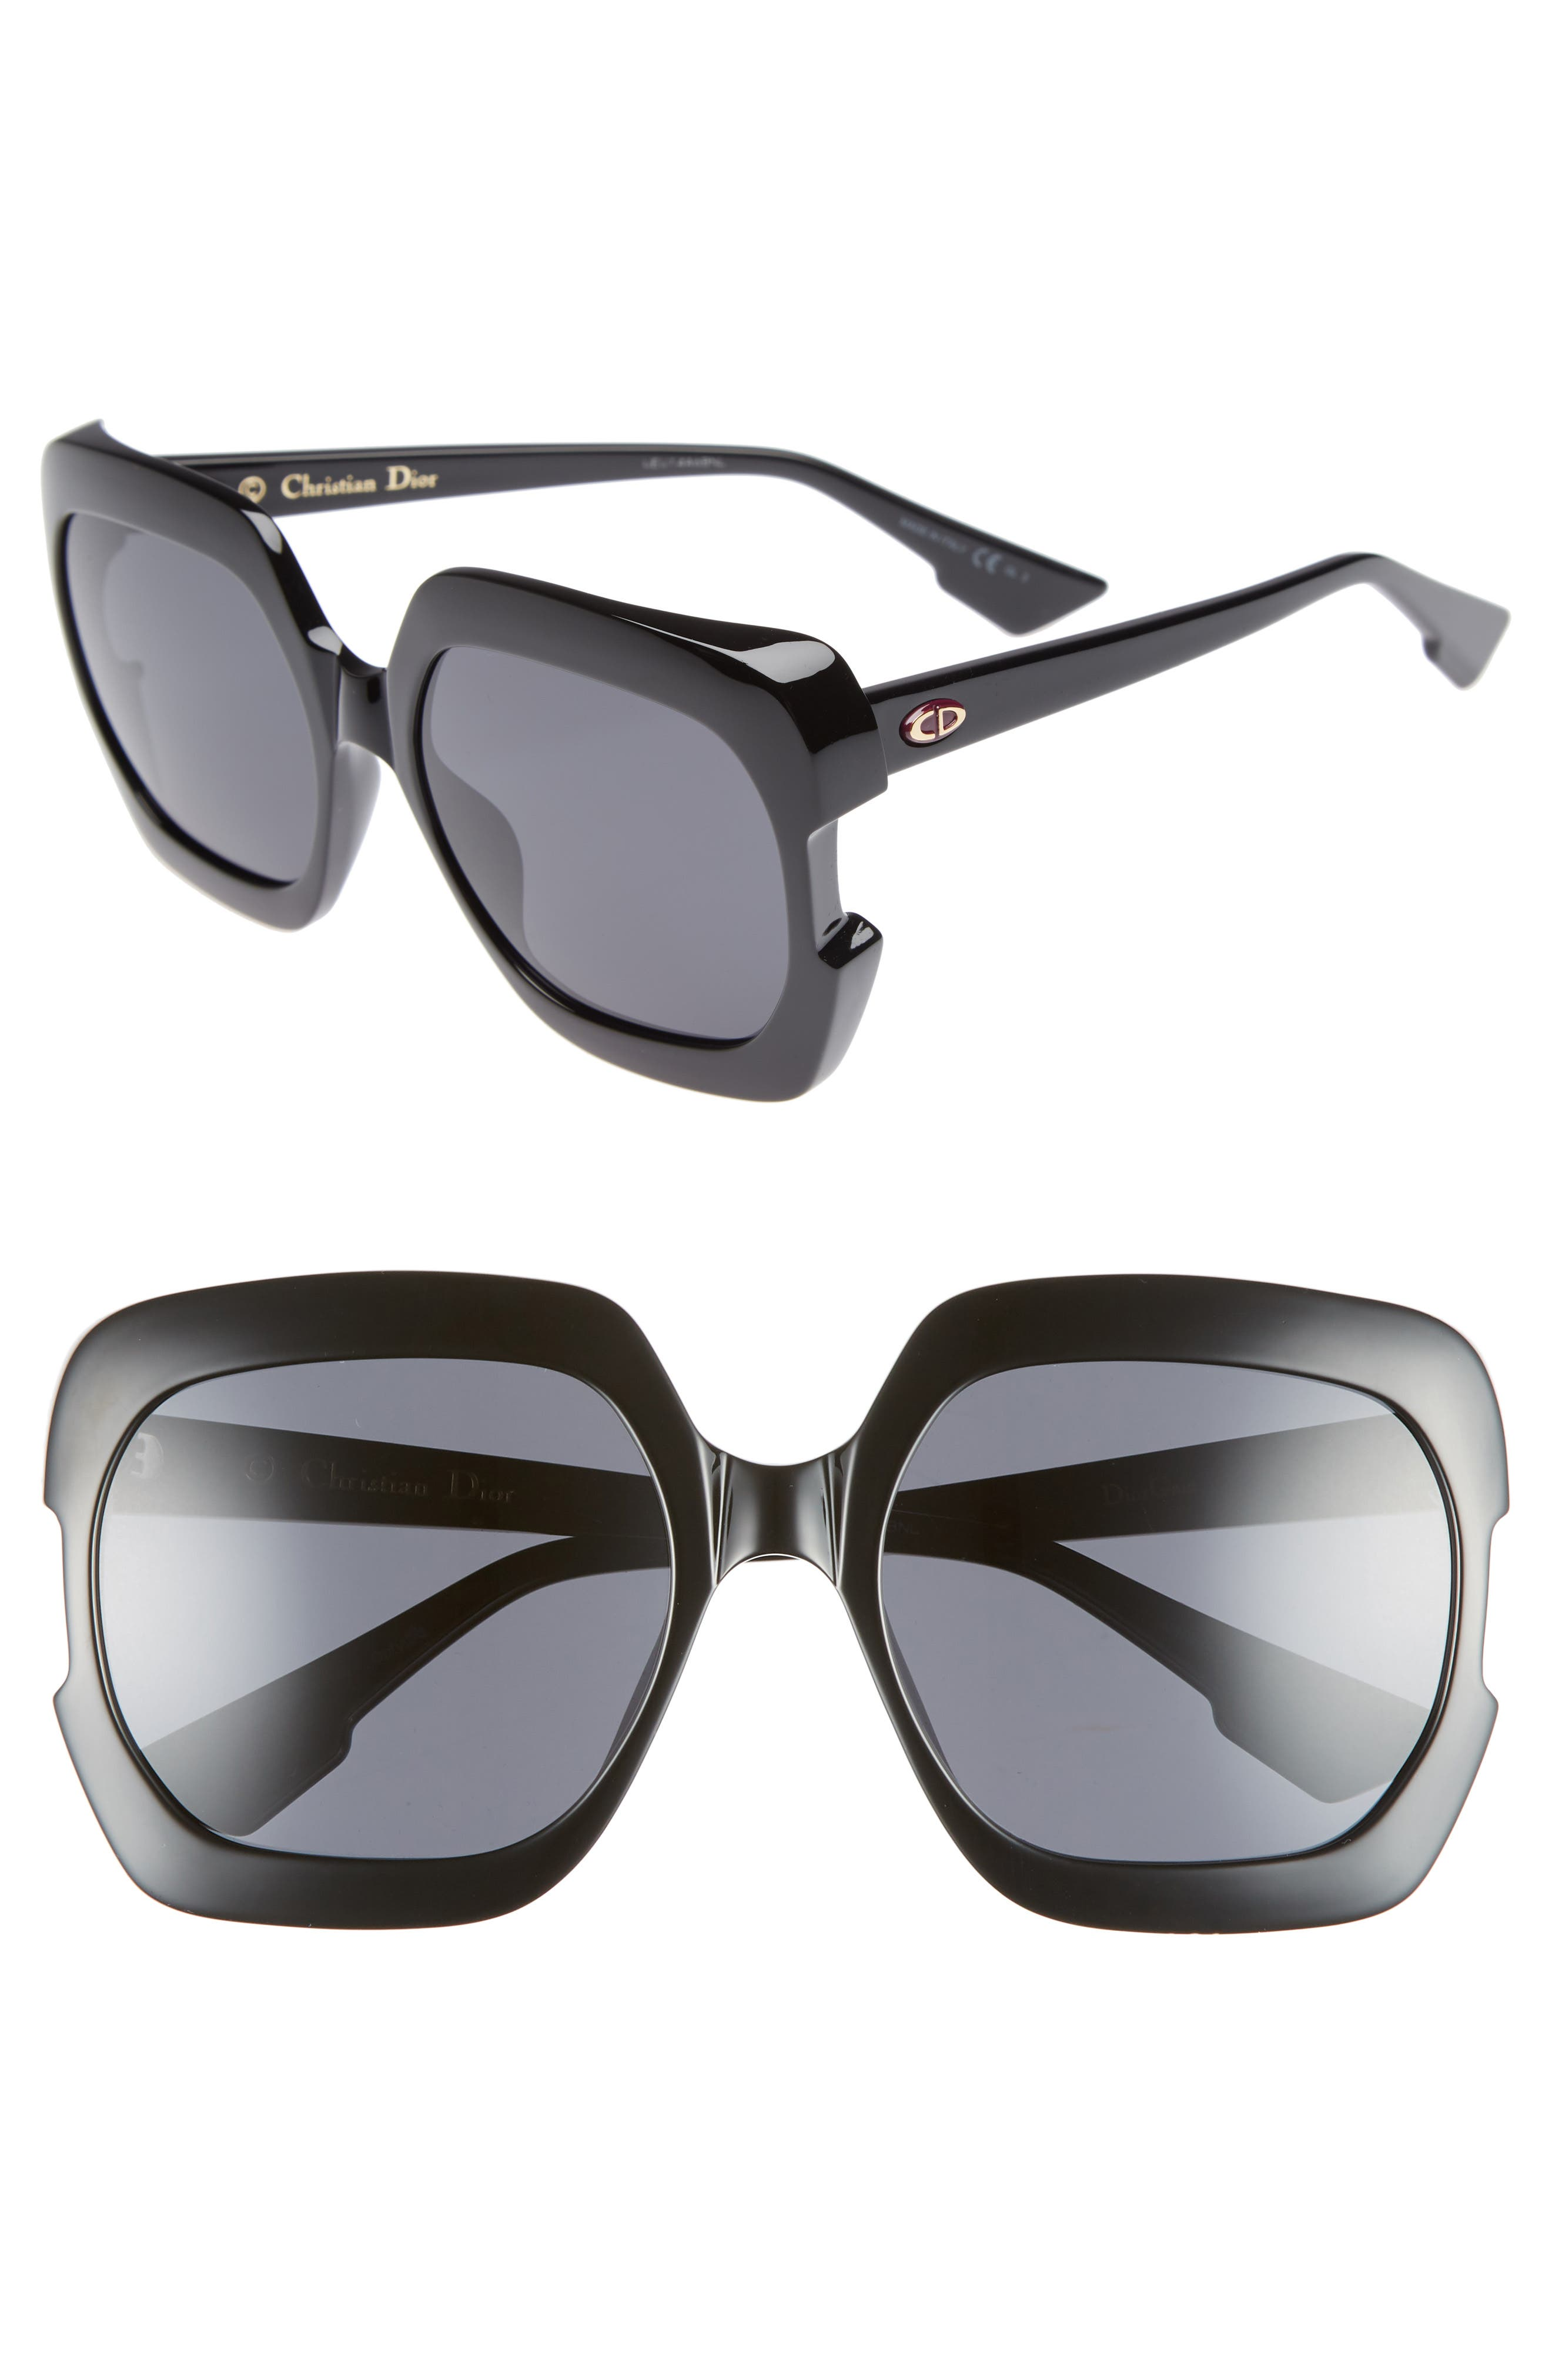 Gaia 58mm Square Sunglasses,                             Main thumbnail 1, color,                             001